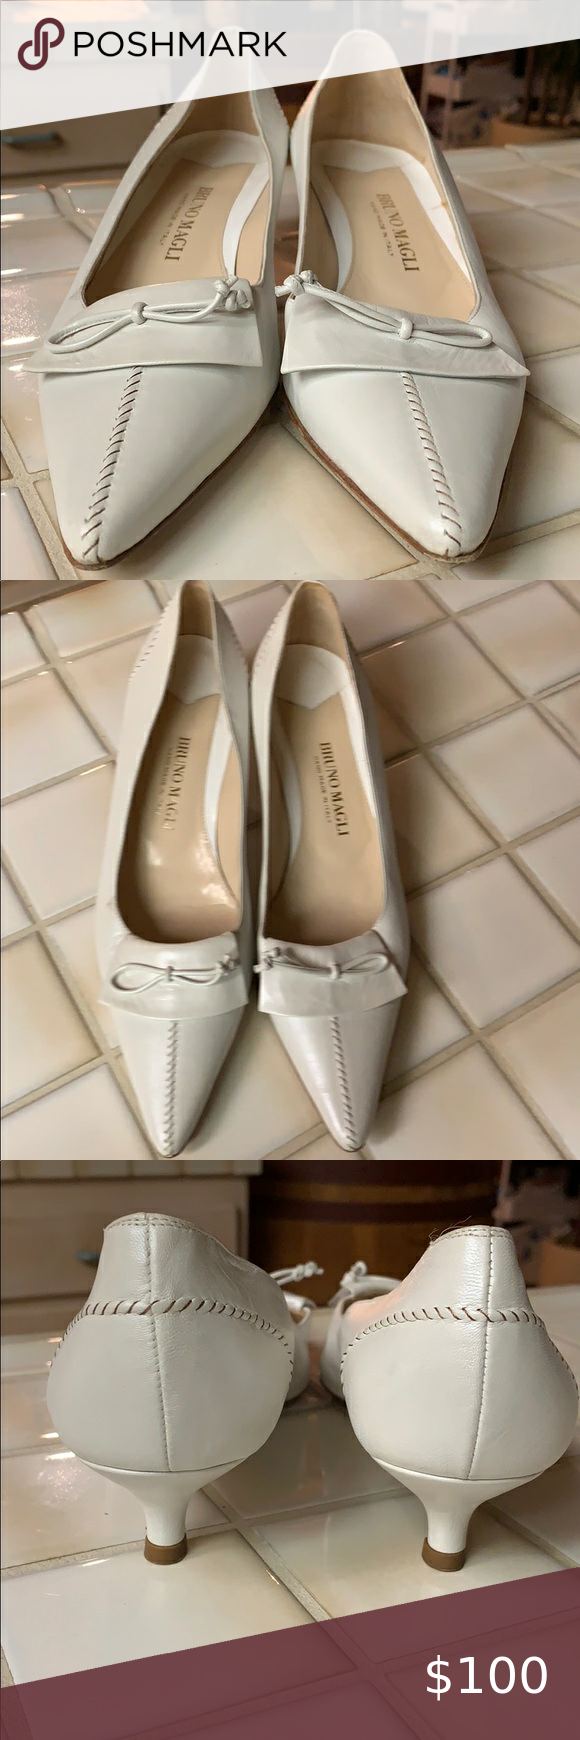 Bruno Magli Ivory Leather Kitten Heels Sz 8 In 2020 Kitten Heels Shoes Women Heels Heels